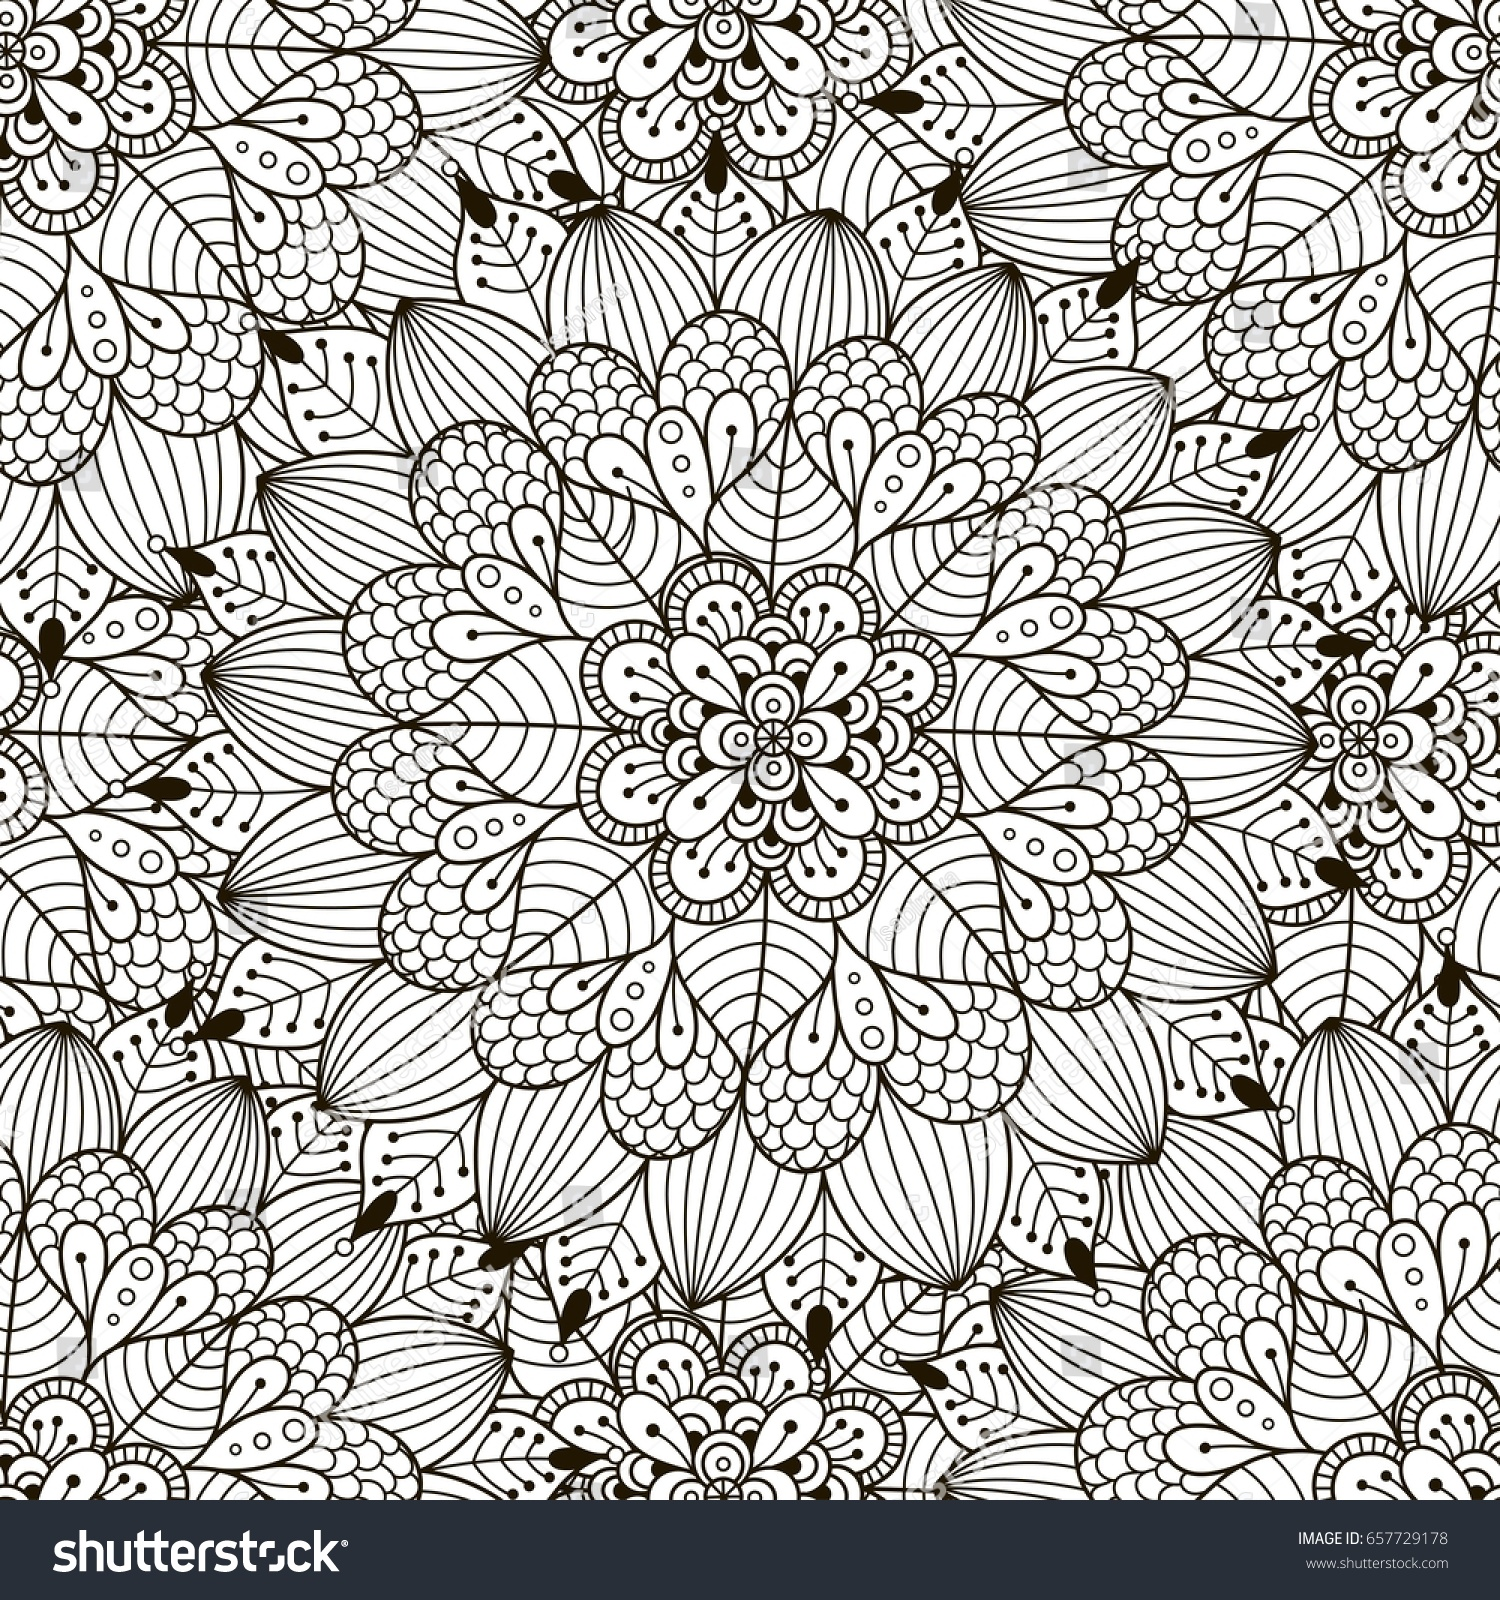 Floral Ornament Seamless Pattern Coloring Page Stock Vector ...